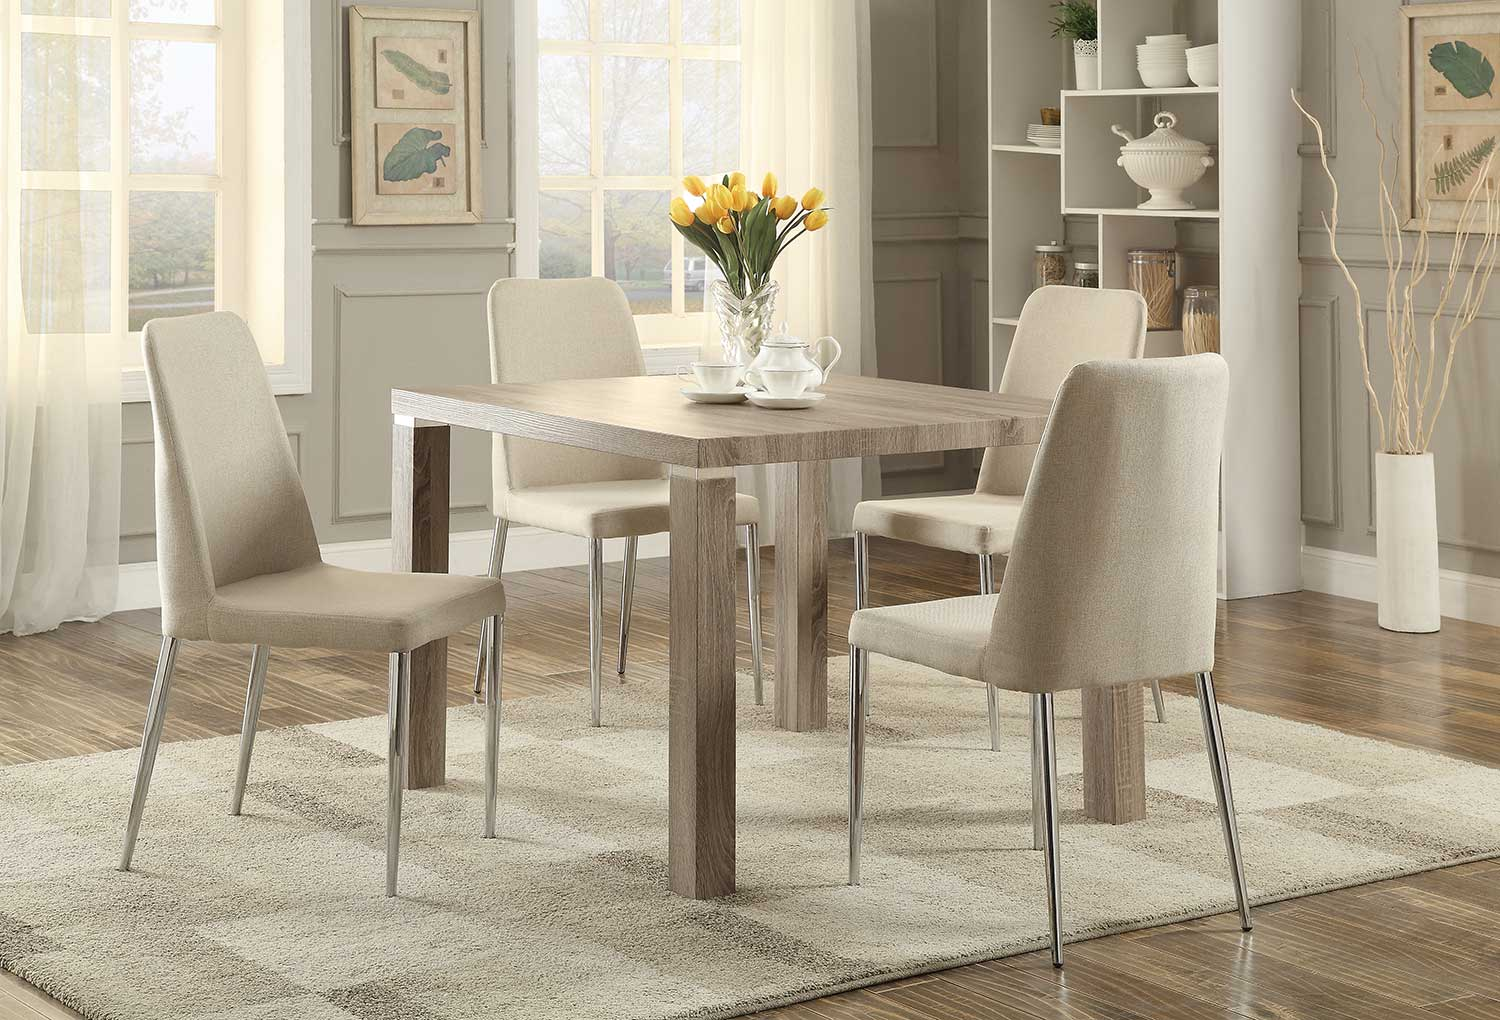 Homelegance Luzerne Dining Set - Washed Weathered Wood Legs